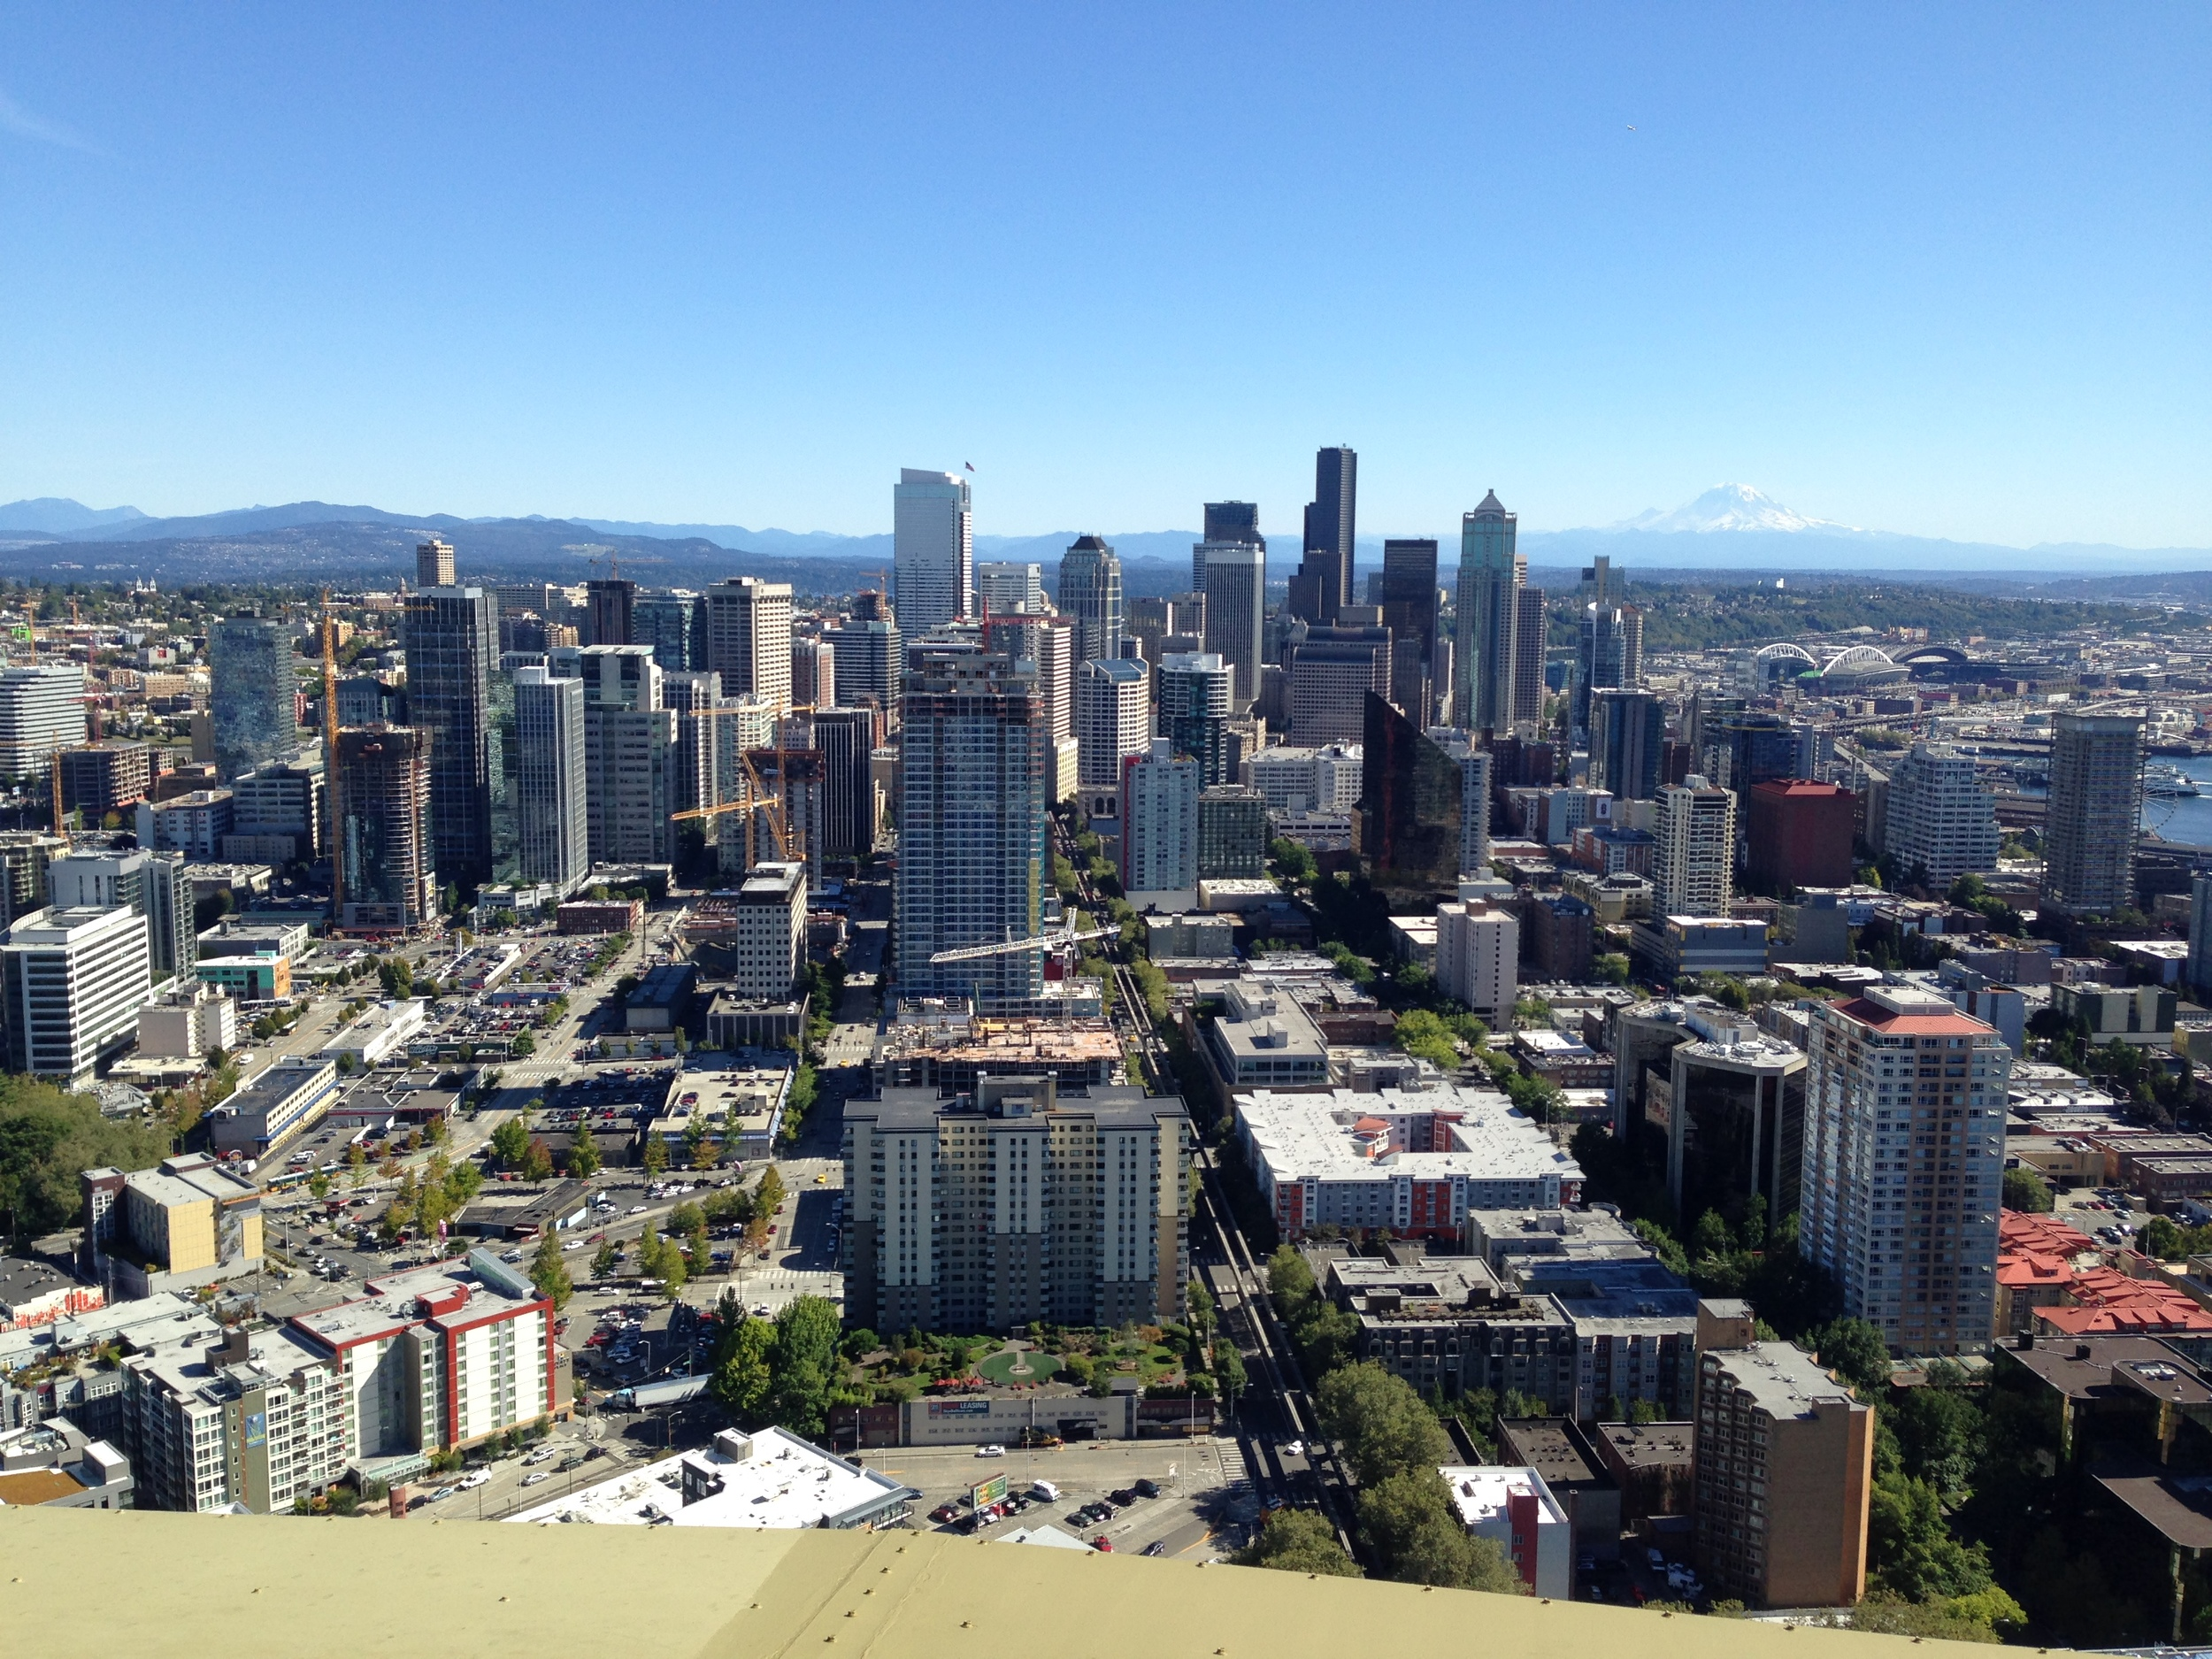 Seattle Skyline from the Space Needle - by Riet Mortier